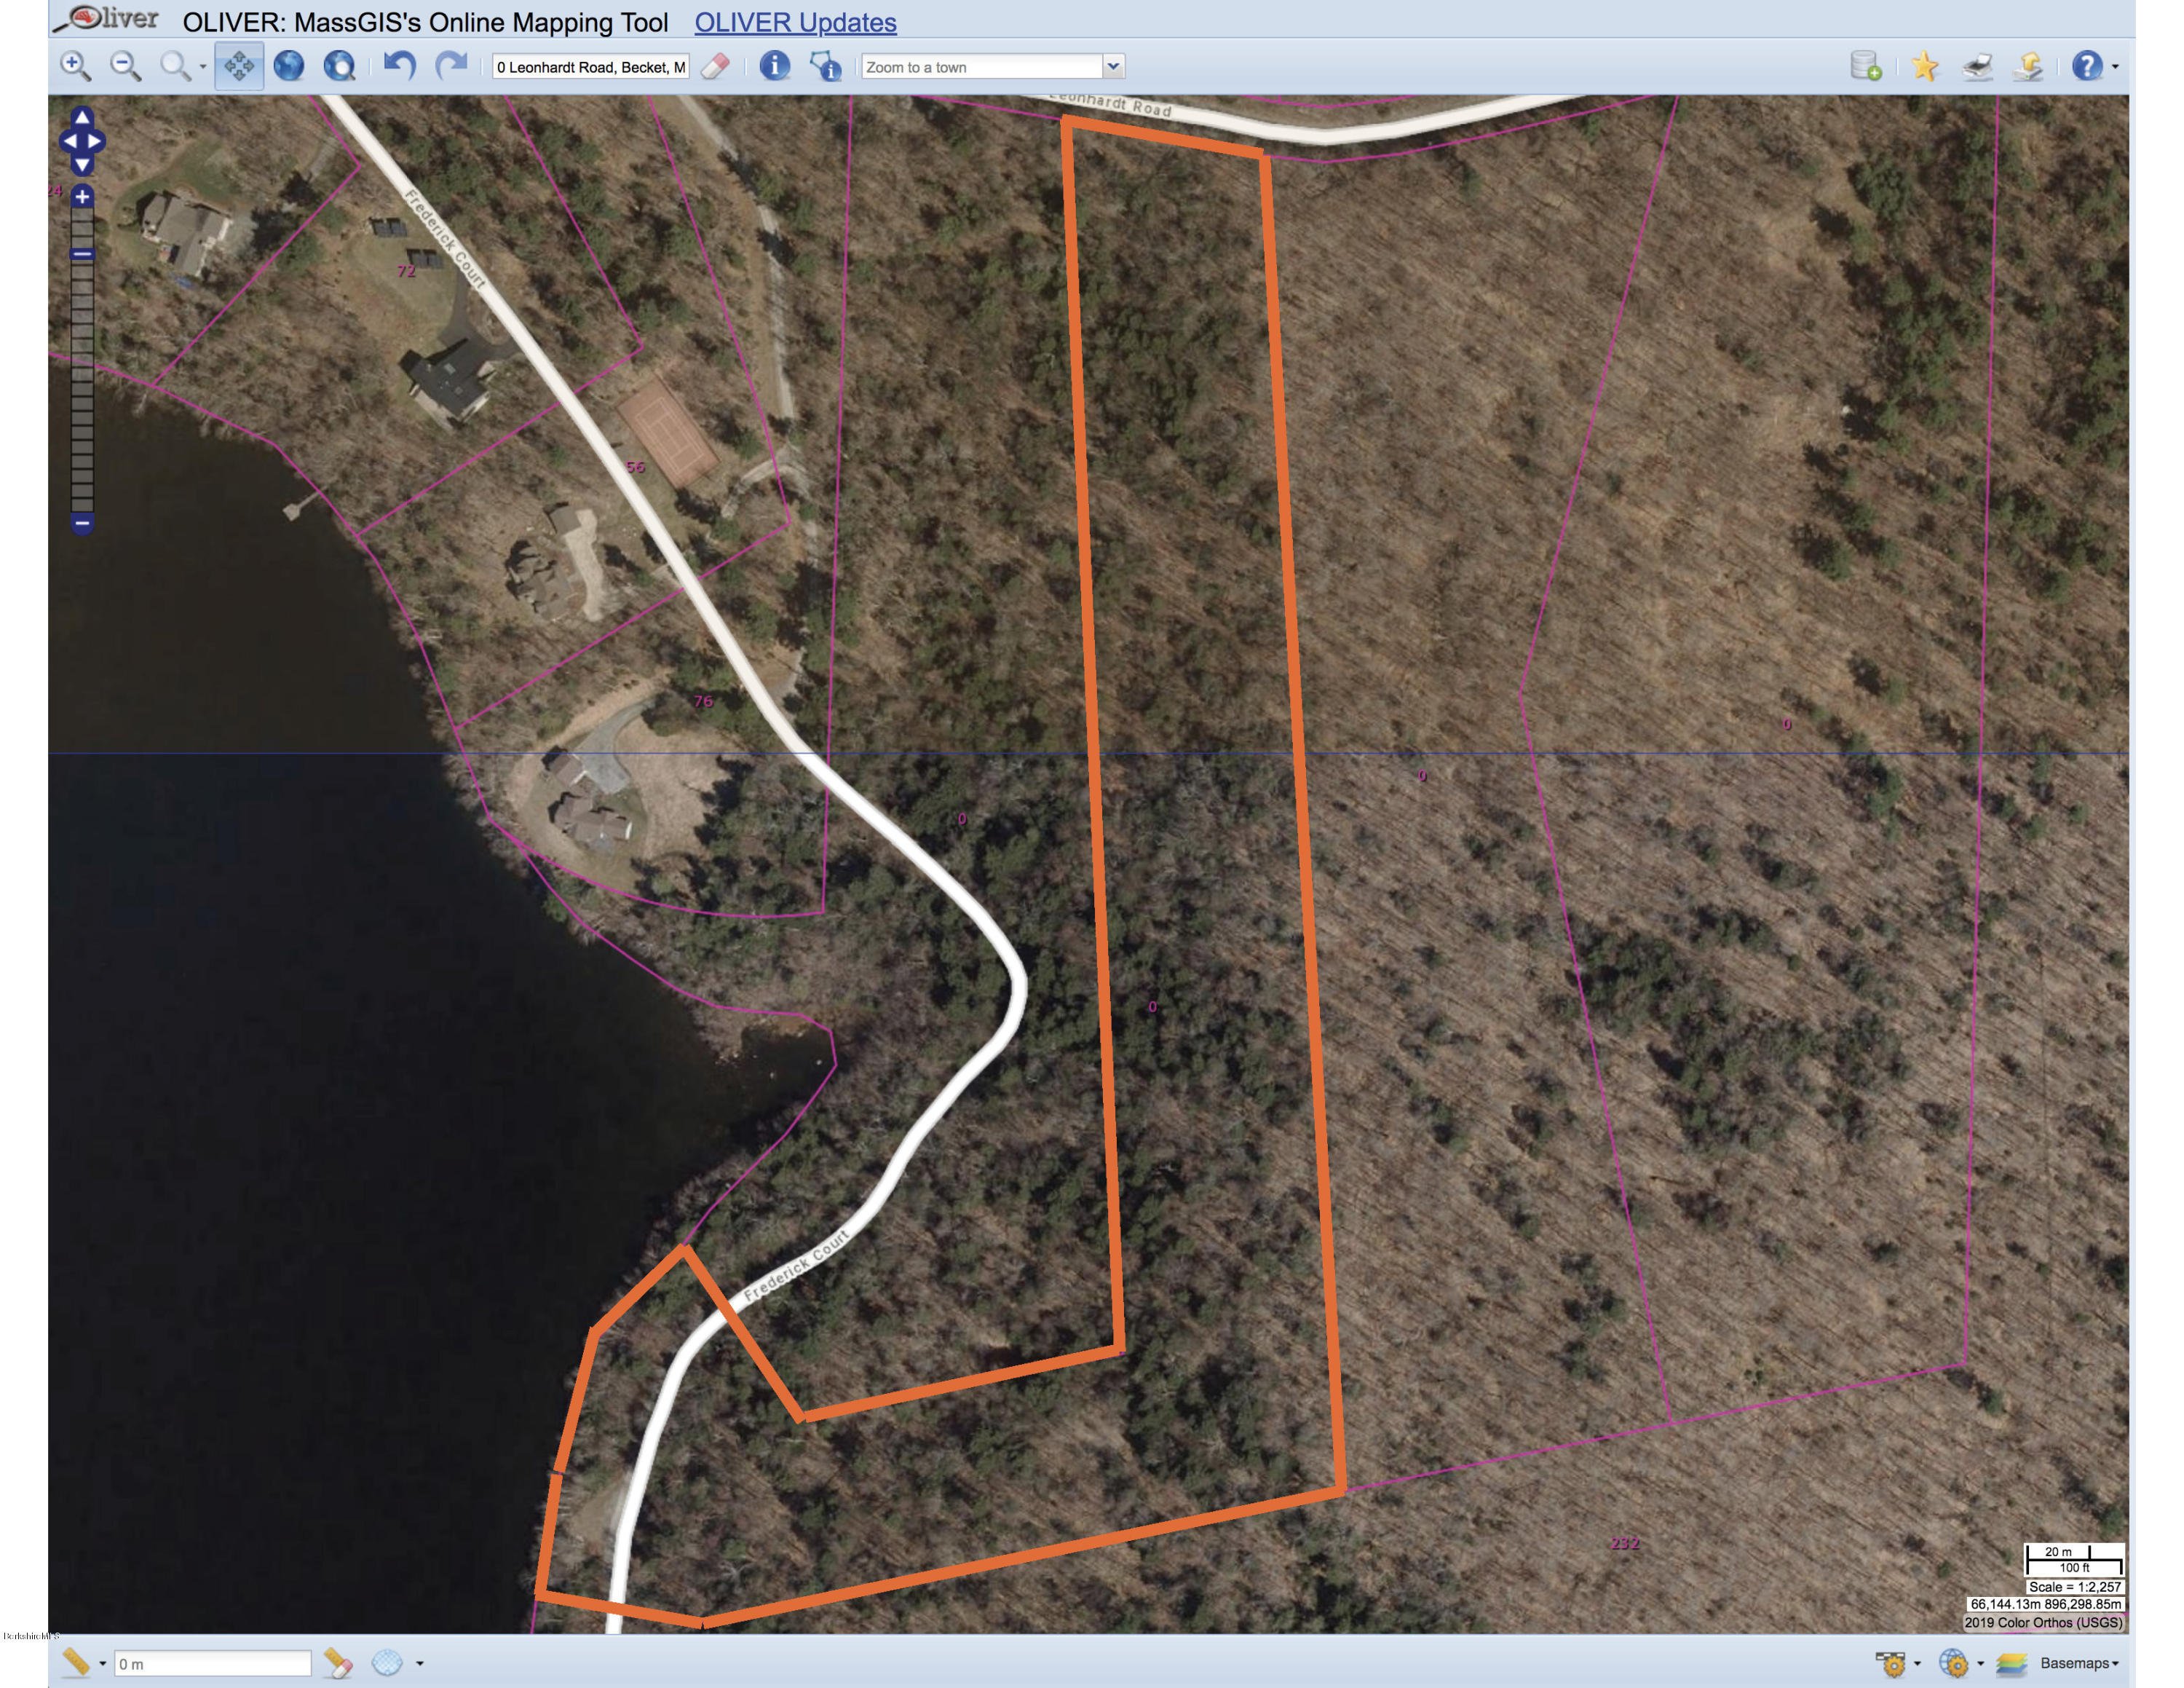 Property located at 00 Leonhardt Rd Becket MA 01223 photo